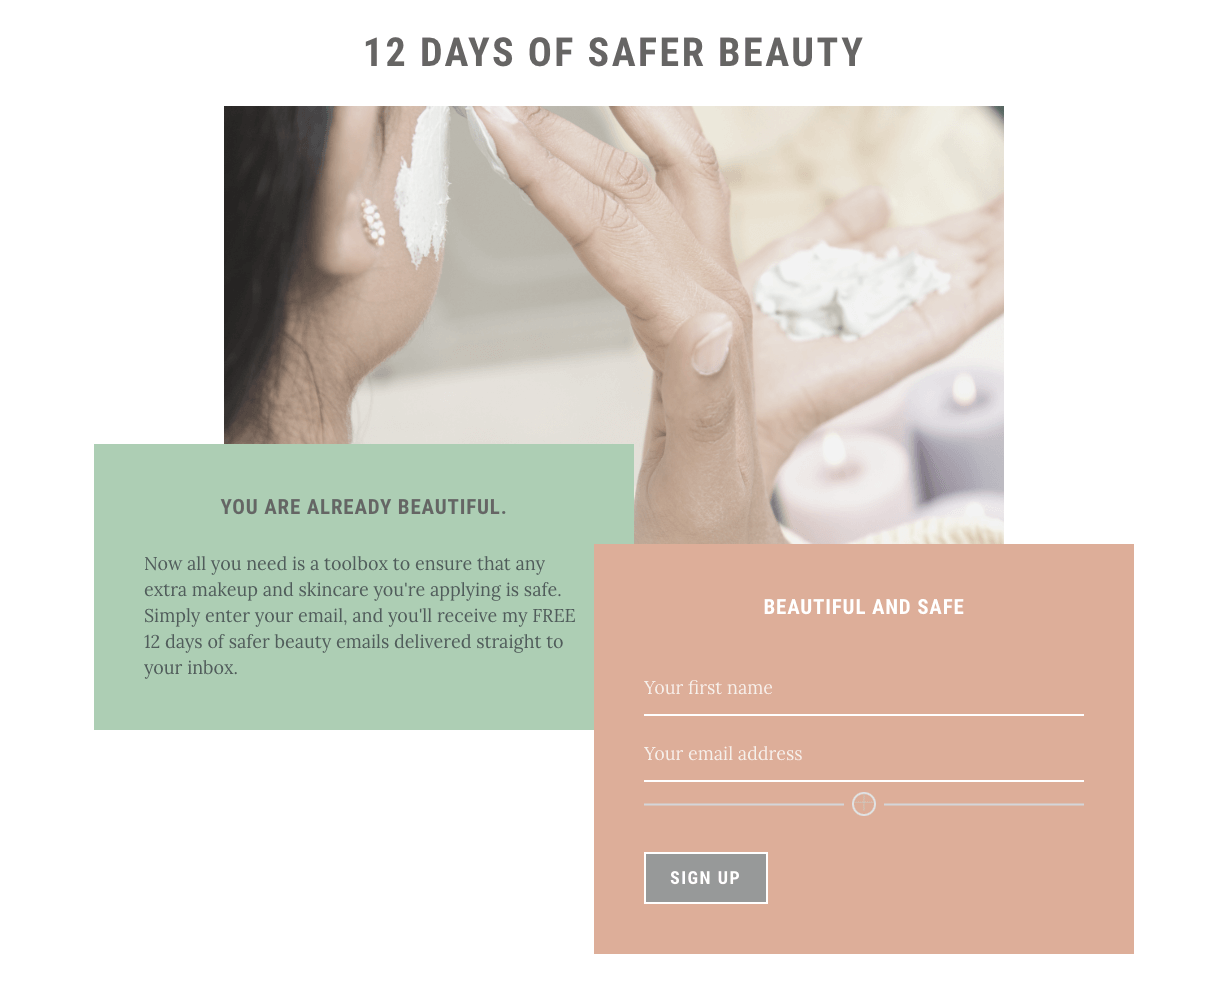 Free 12 Days of Safer Beauty Exploration Journey agutsygirl.com sign up #saferbeauty #skincare #makeup